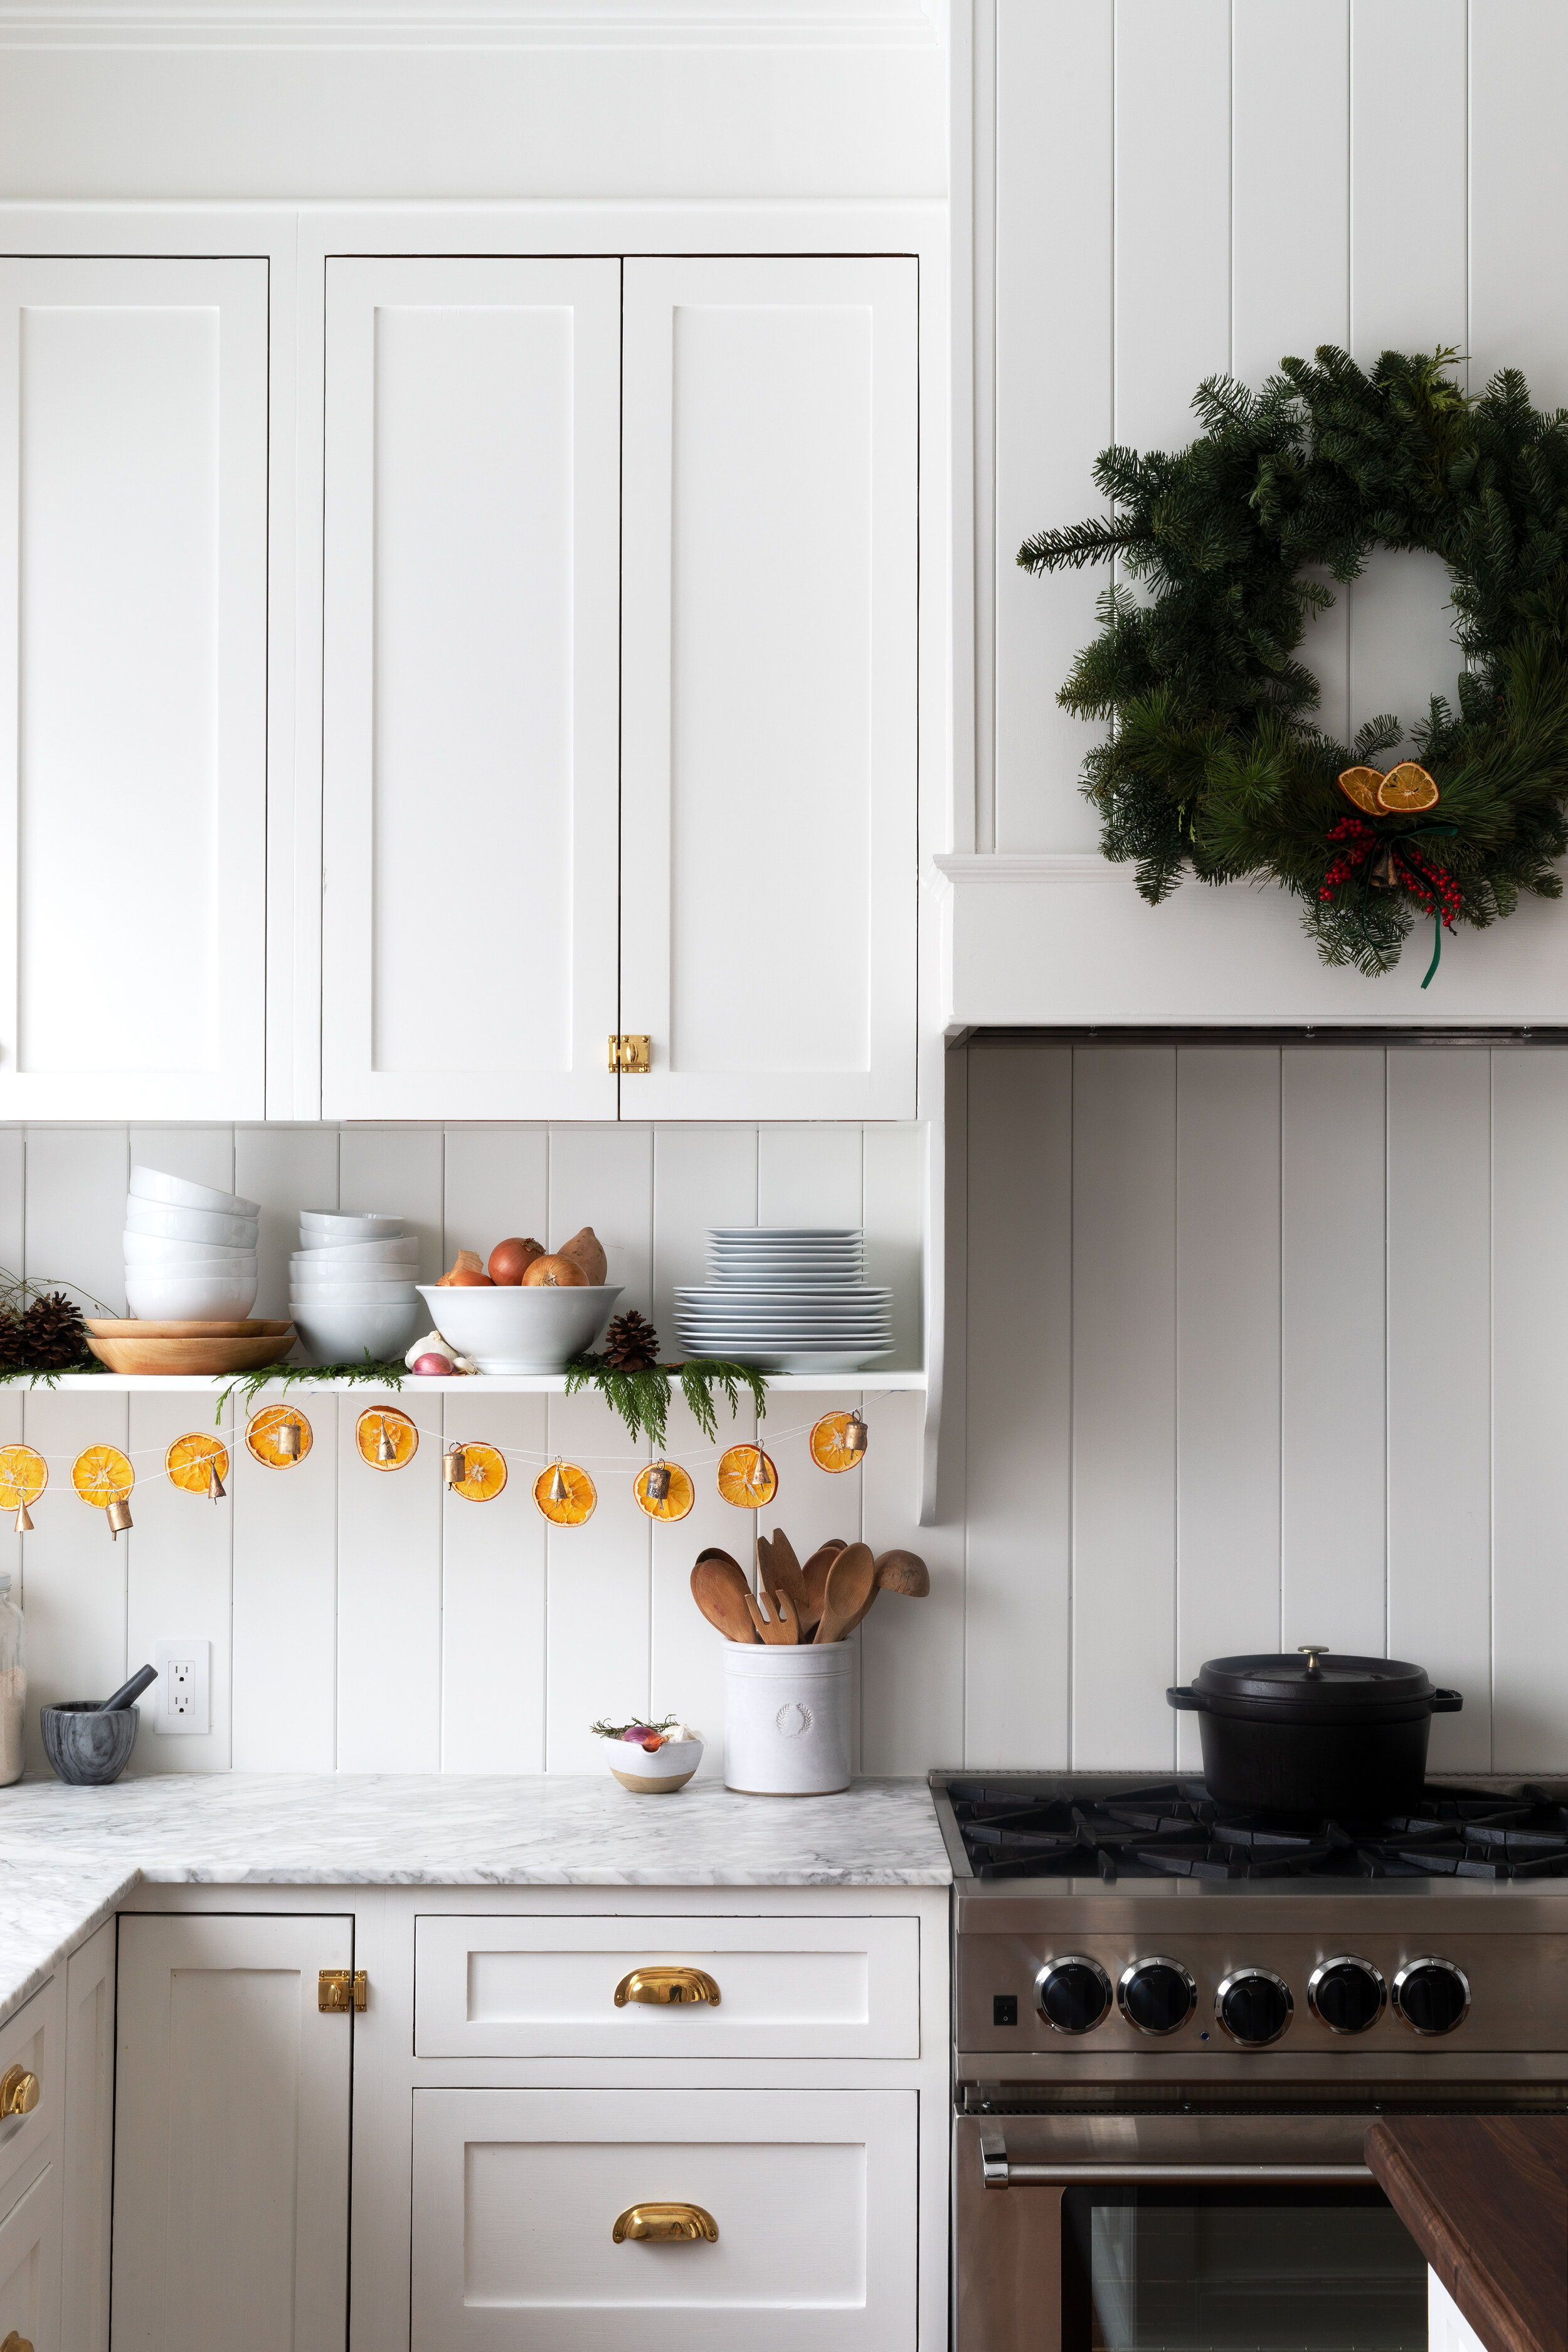 How To Make A Dried Orange Garland The Grit And Polish